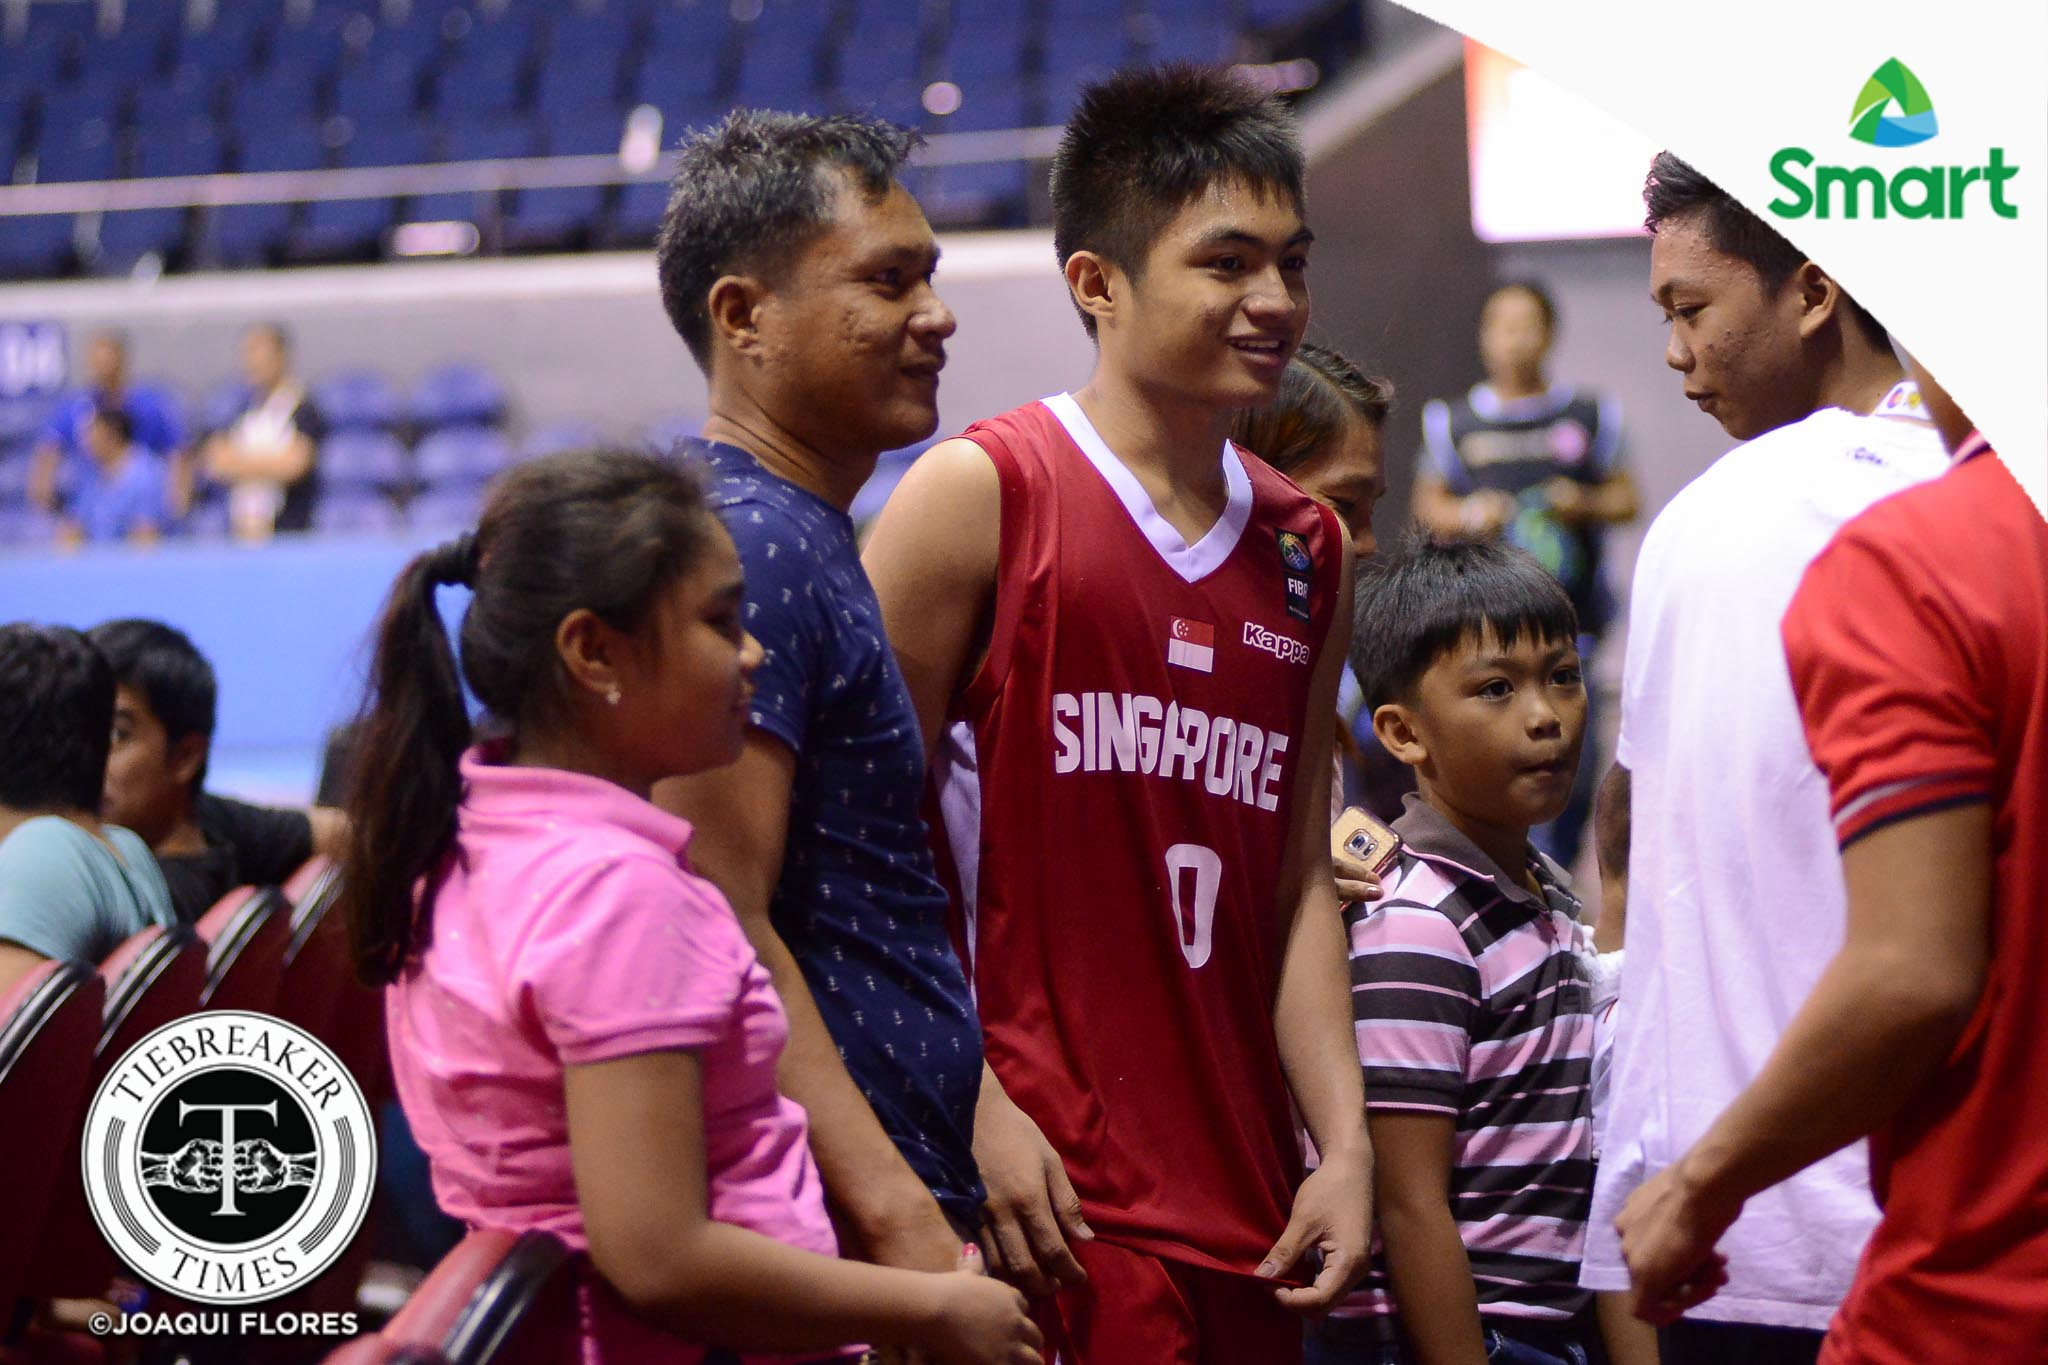 Tiebreaker Times Reuben Amado's family relishes return to Manila 2017 SEABA Championship 2017 SEABA U-16 Basketball News  Singapore (Basketball) Reuben Amado